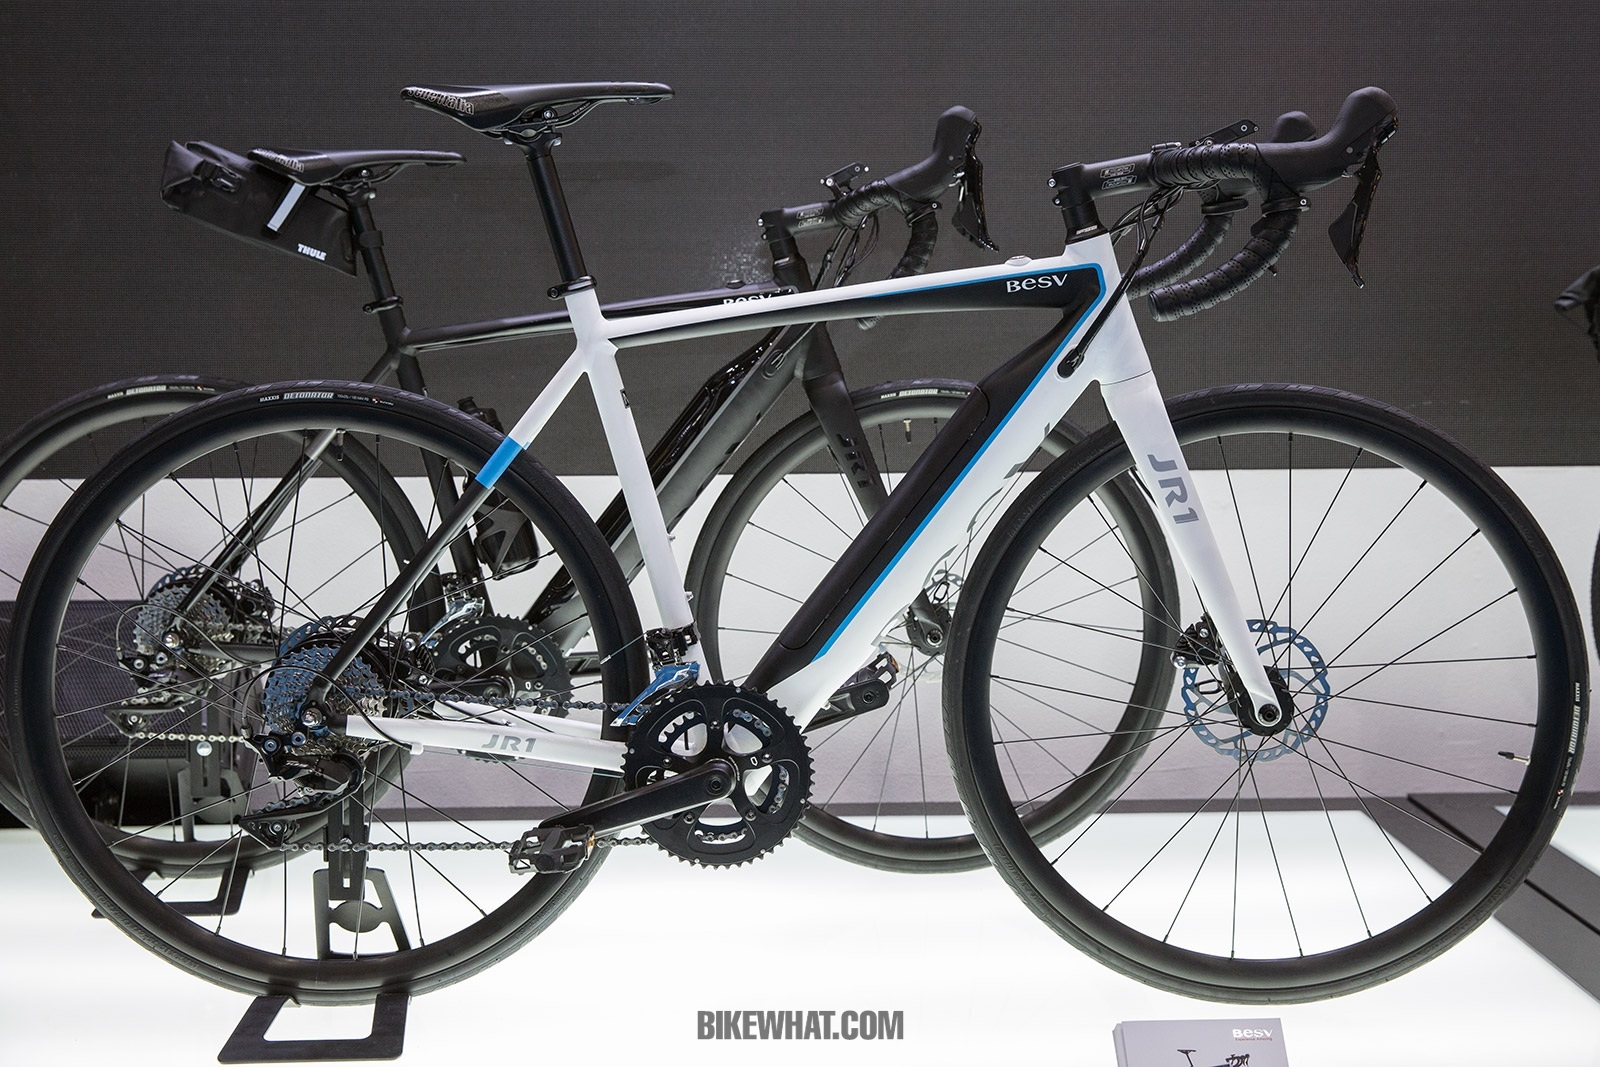 Feature_TaipeiCycle_2019_Besv_JR1_1.jpg